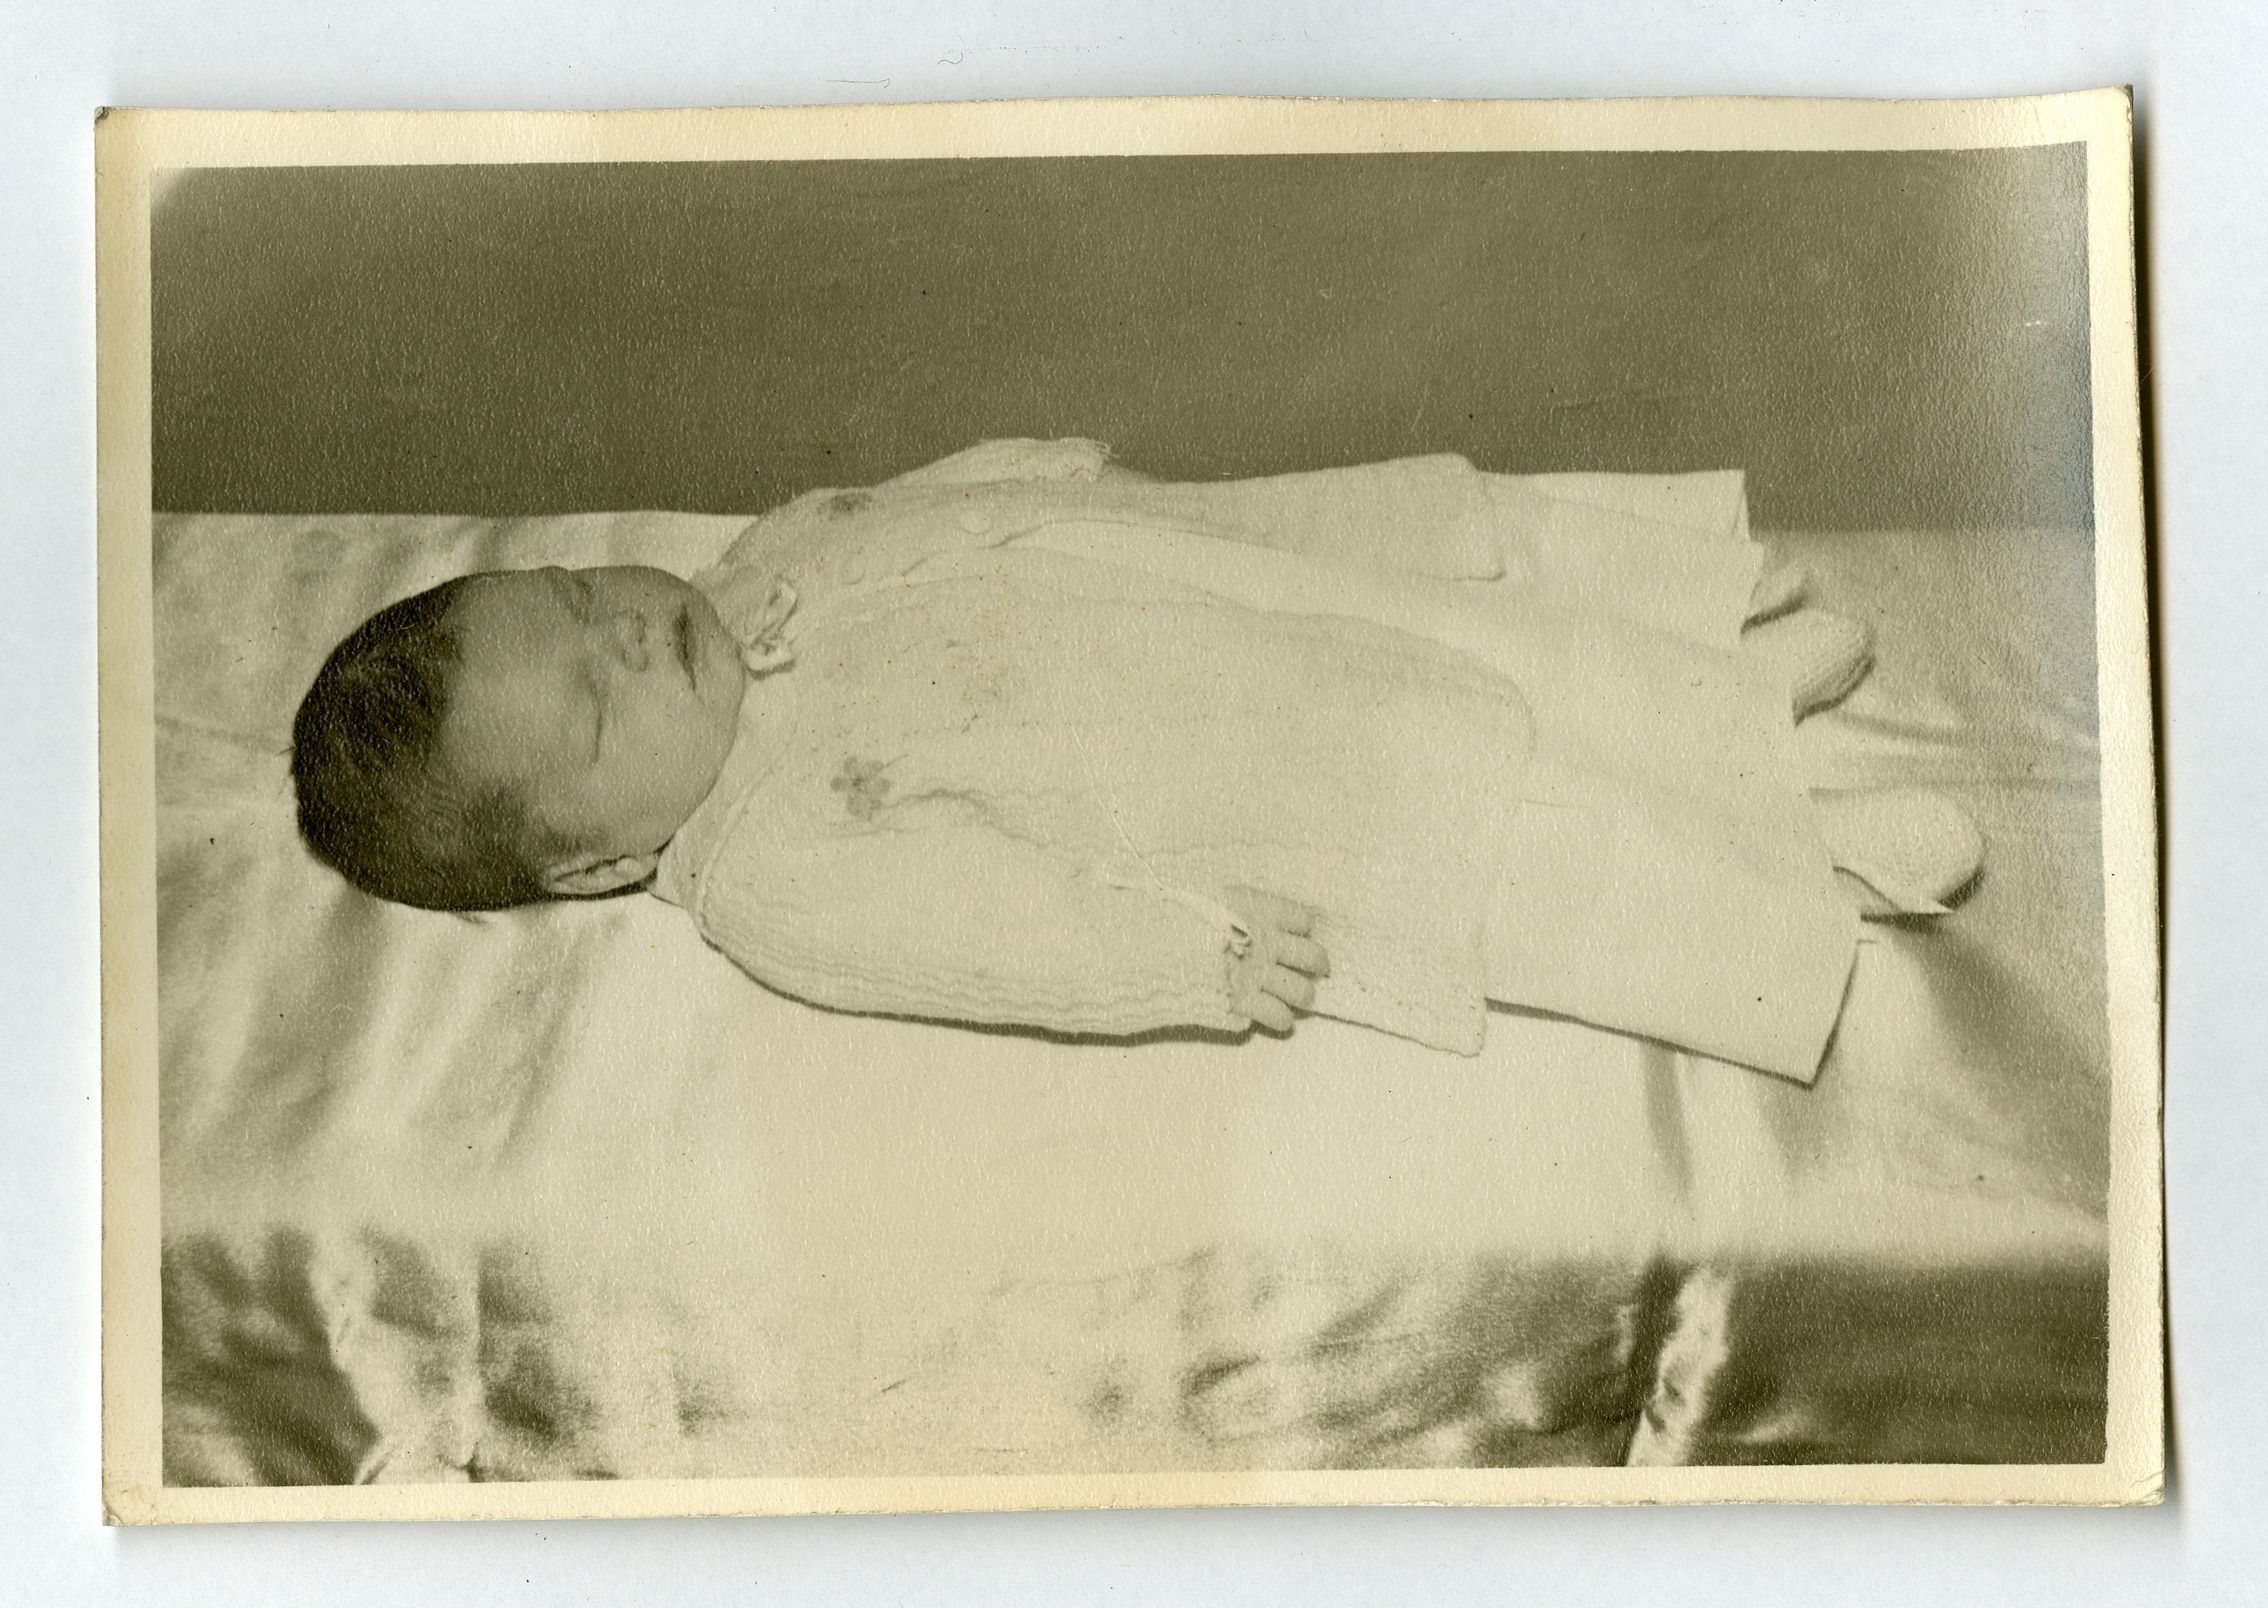 Postmortem of an baby who d 8 days after birth